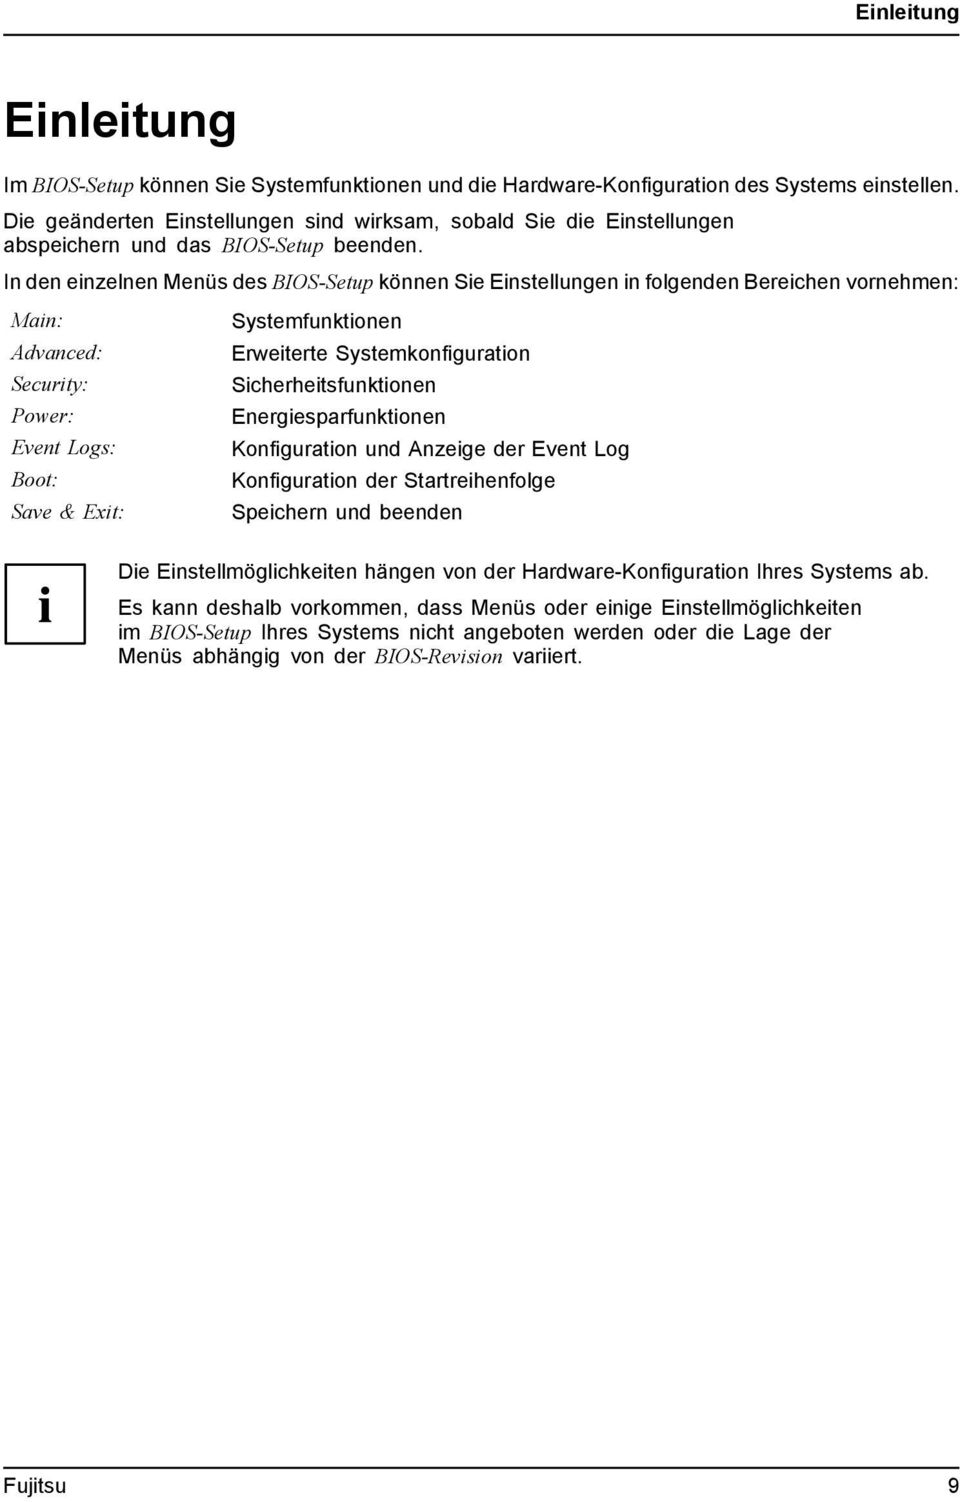 In den einzelnen Menüs des BIOS-Setup können Sie Einstellungen in folgenden Bereichen vornehmen: Main: Advanced: Security: Power: Event Logs: Boot: Save & Exit: Systemfunktionen Erweiterte